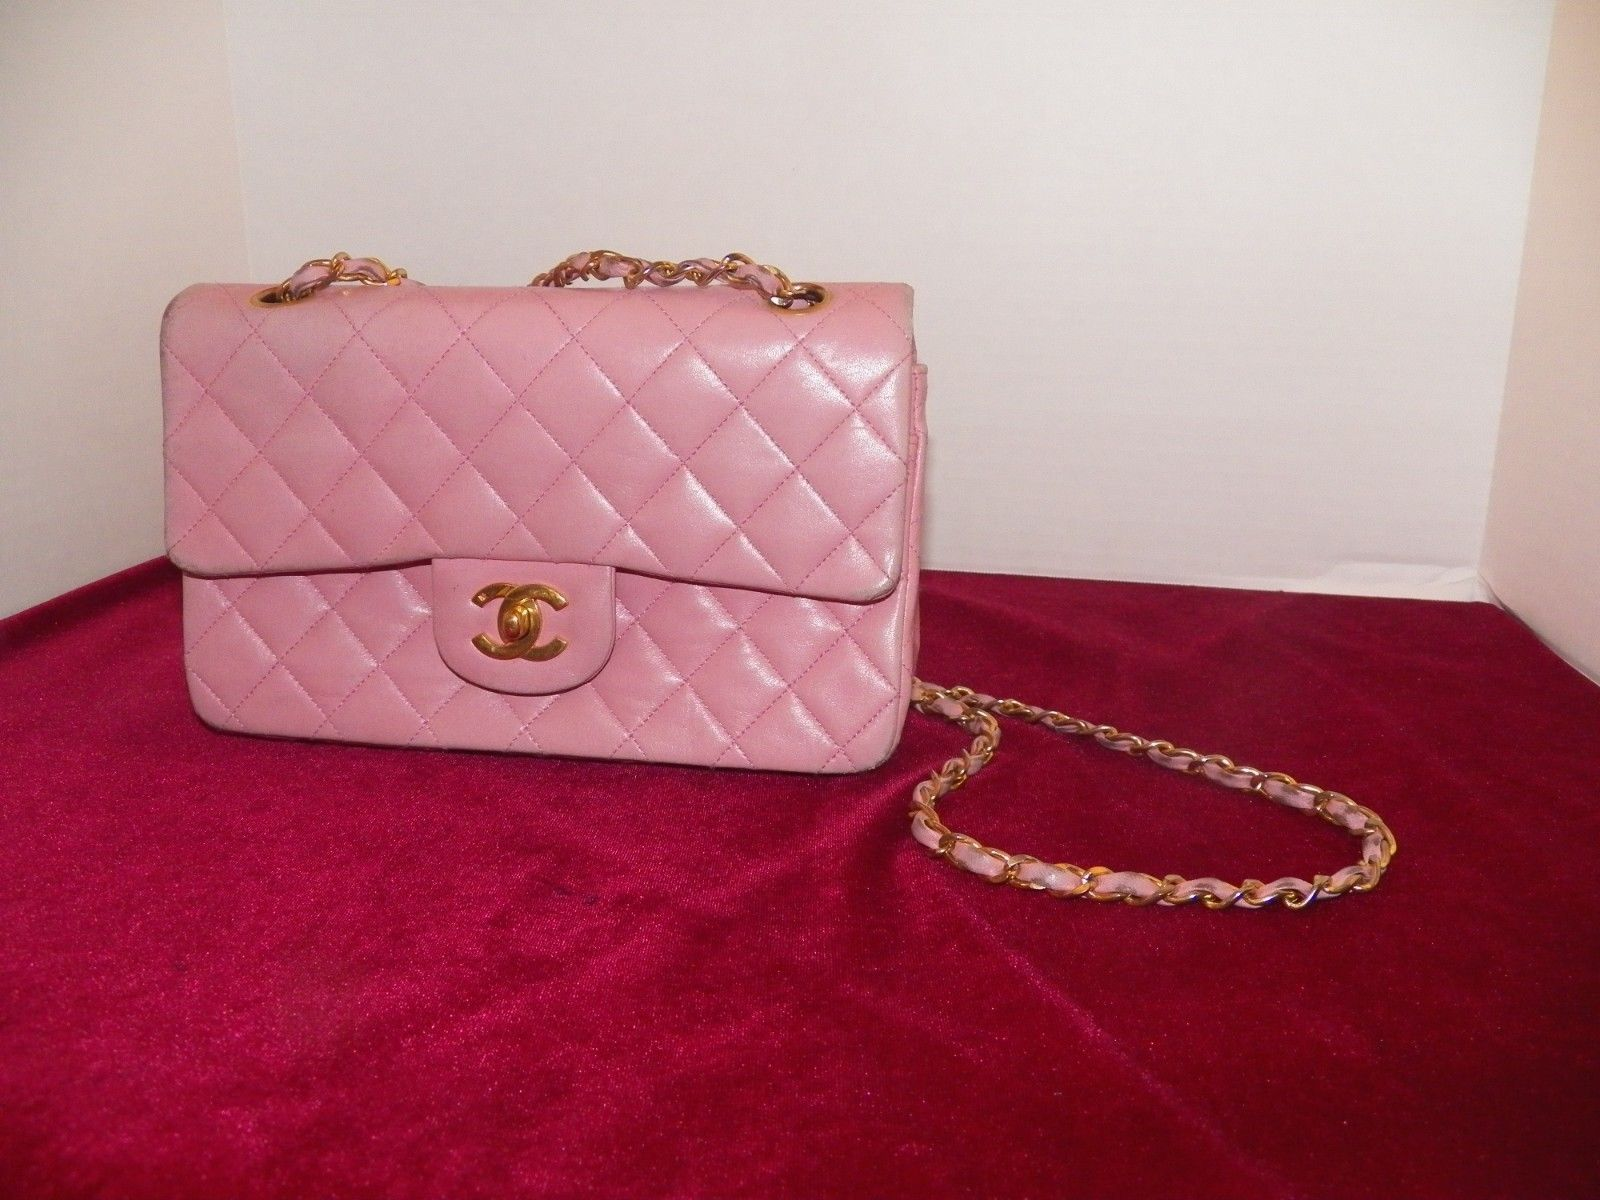 62e30a654eda VINTAGE SMOOTH LAMB LEATHER CHANEL DOUBLE FLAP SHOULDER BAG IN PINK ...